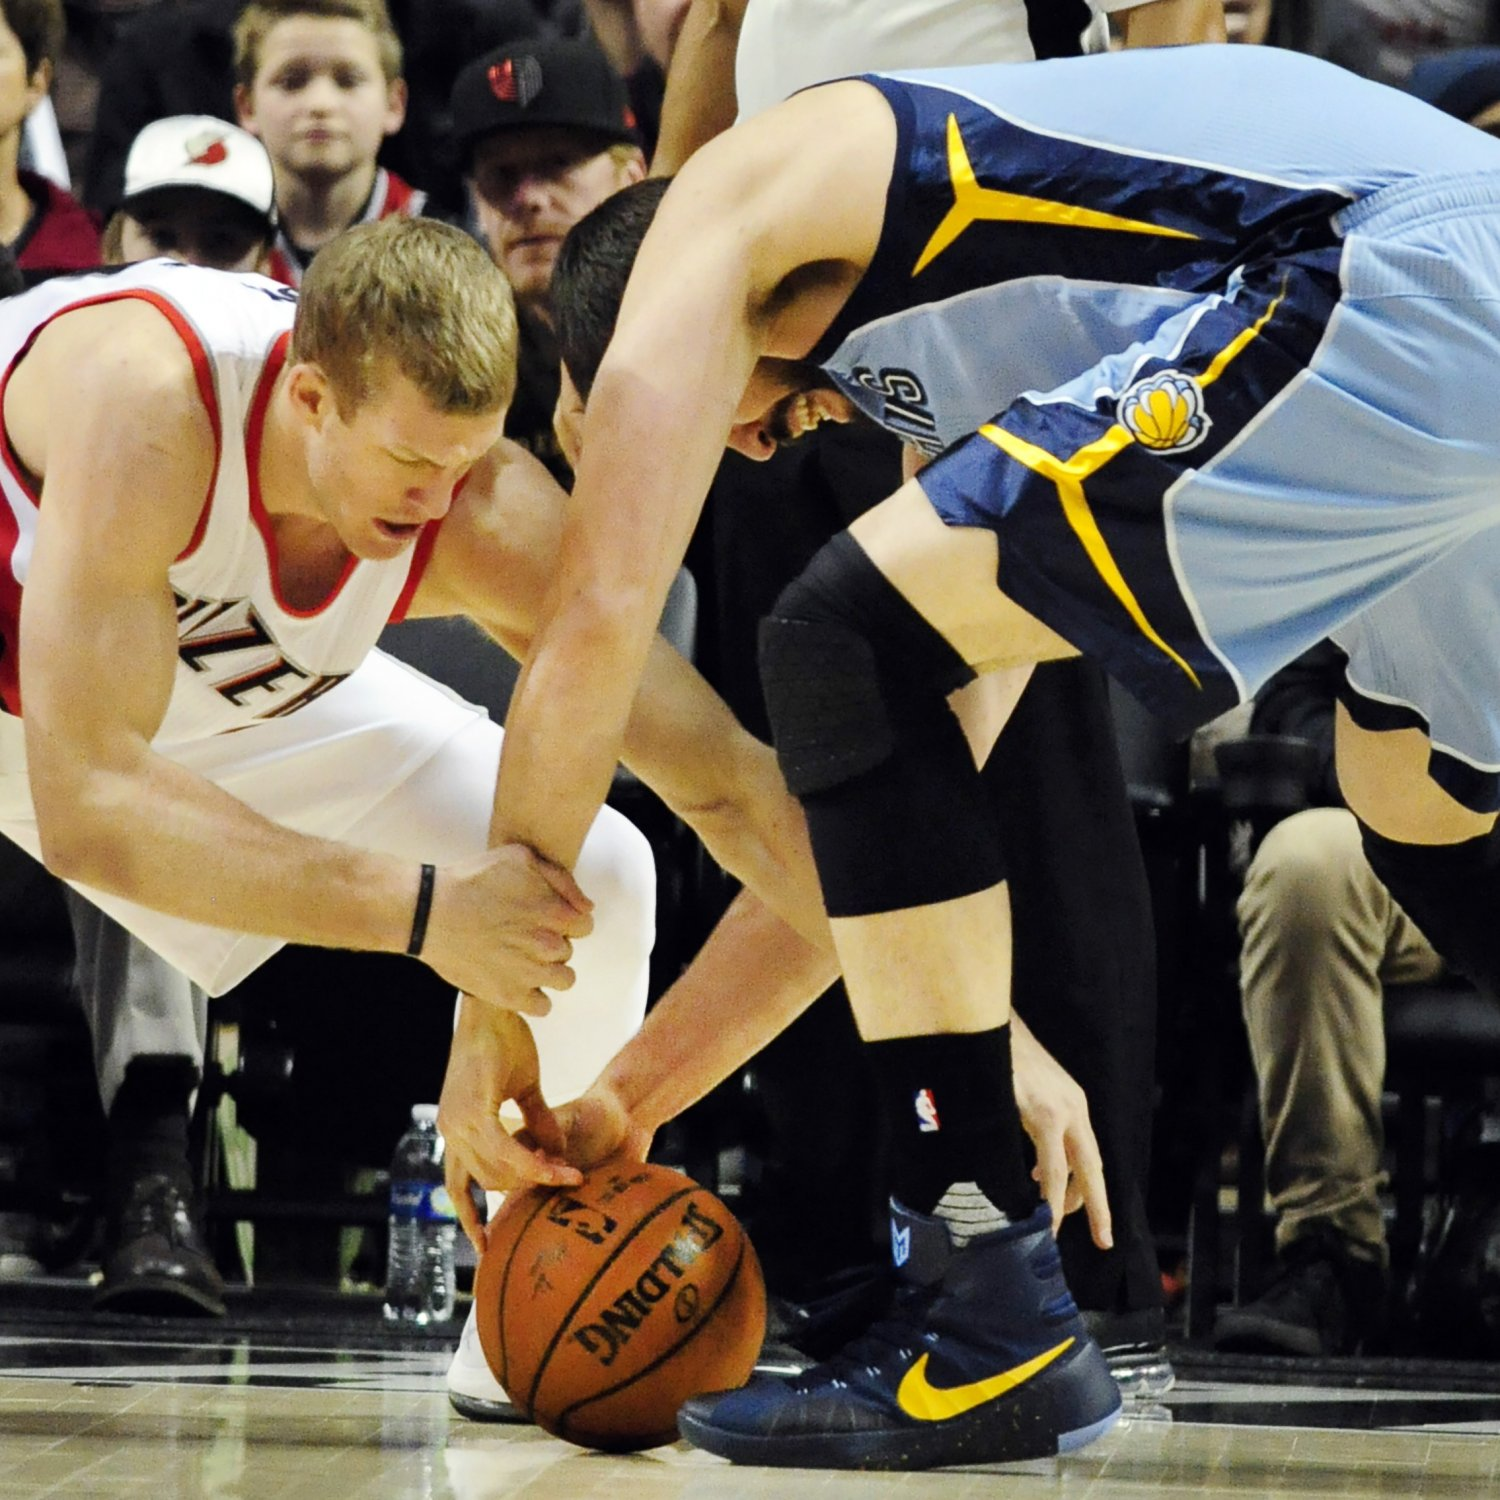 Portland Blazers Last Game: Grizzlies Vs. Trail Blazers: Score, Video Highlights And